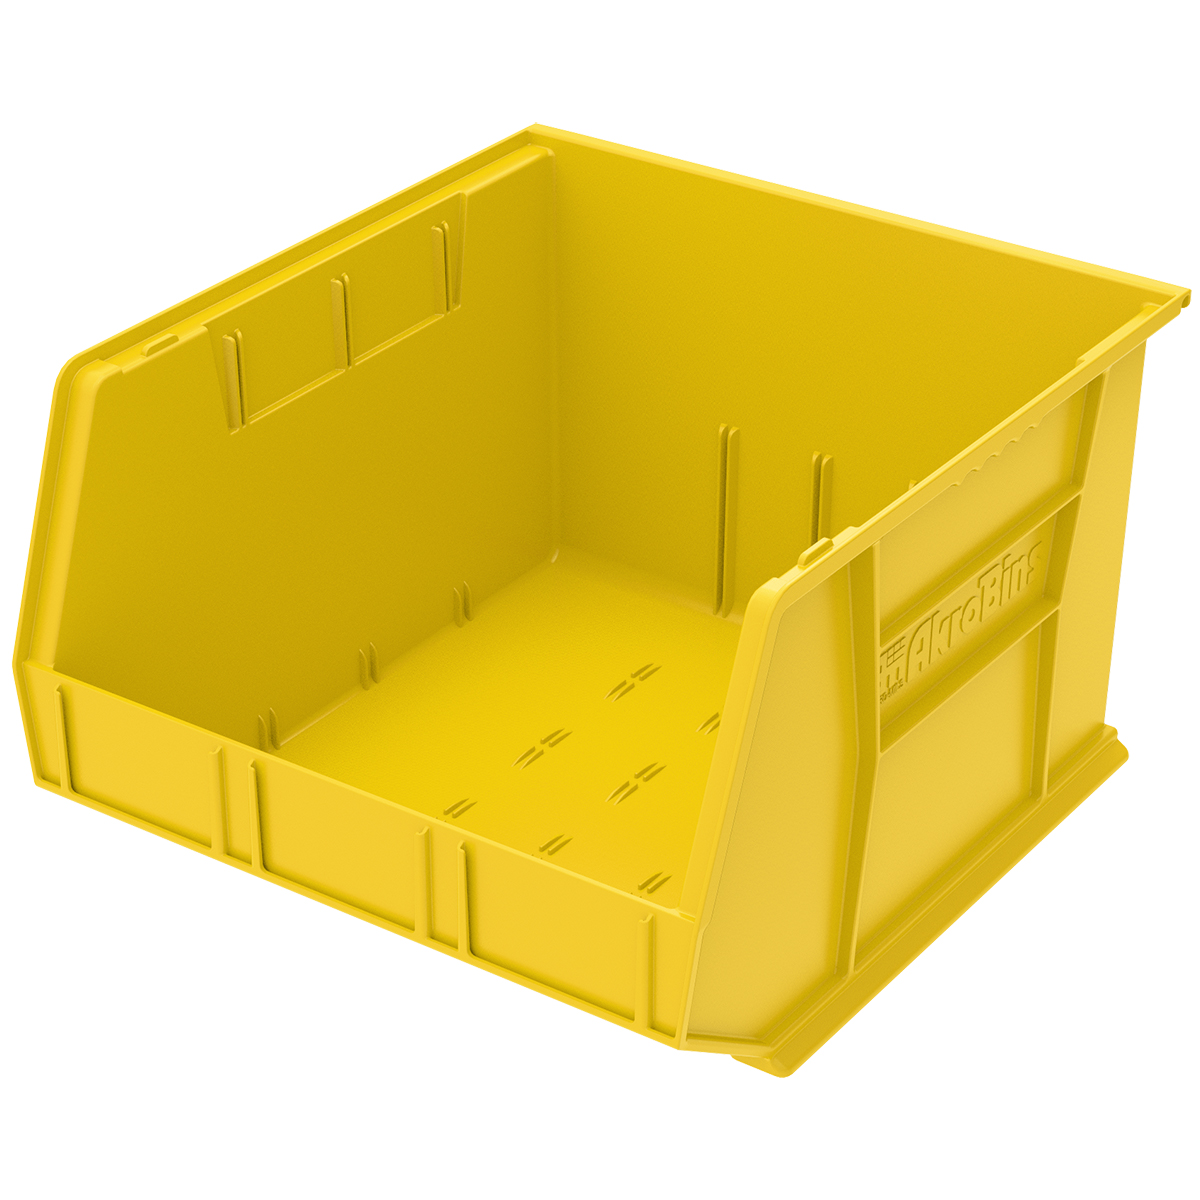 AkroBin 18 x 16-1/2 x 11, Yellow (30270YELLO).  This item sold in carton quantities of 3.